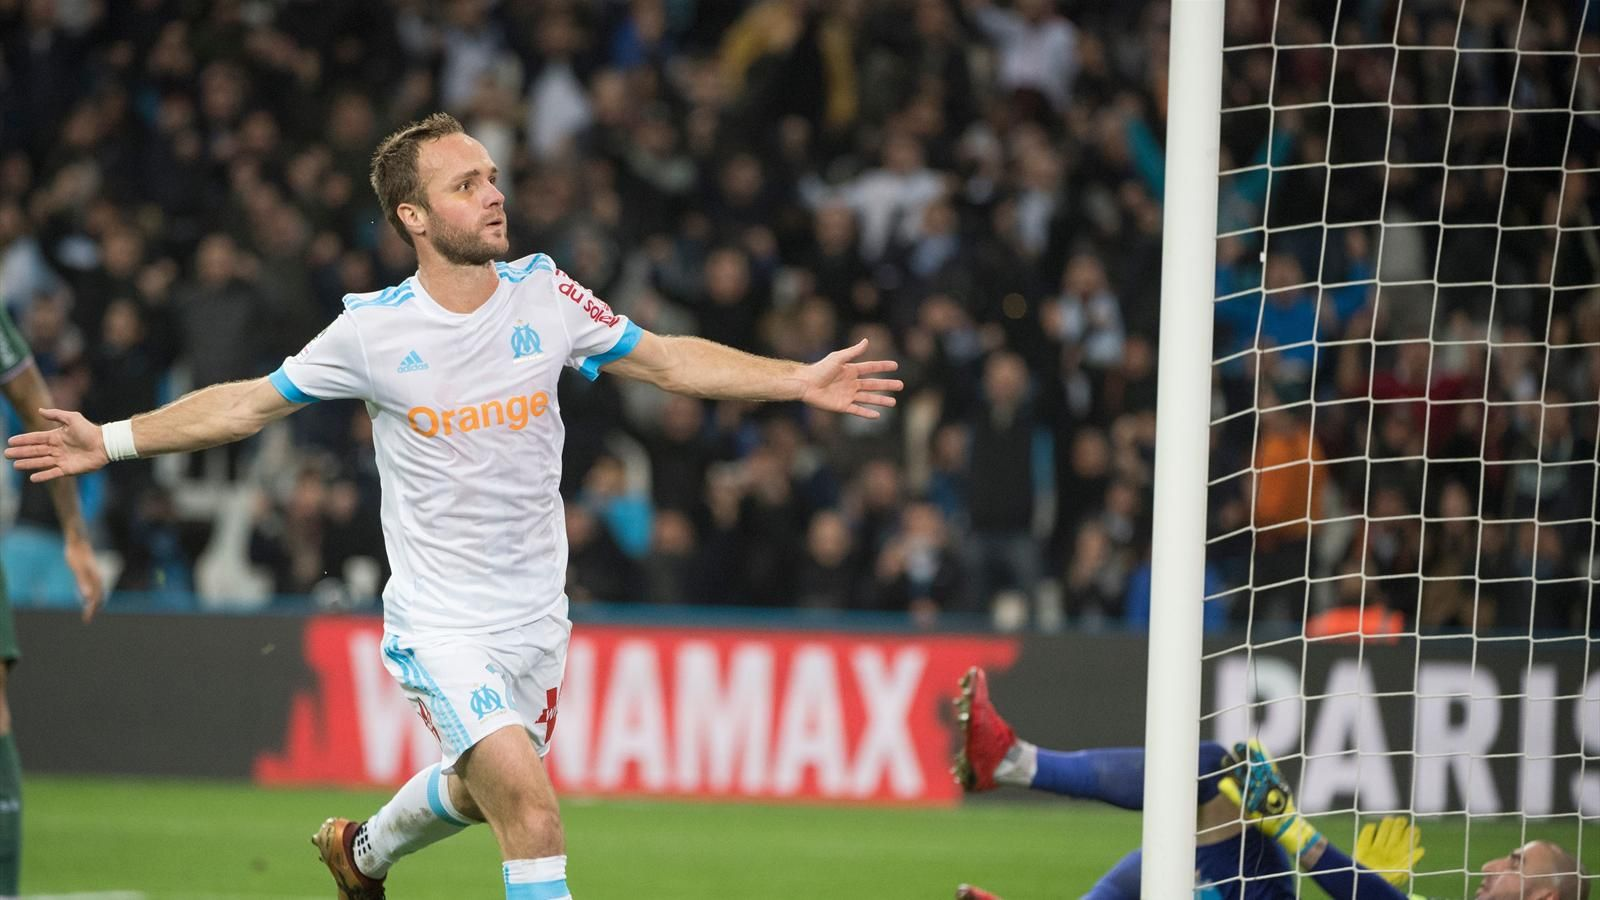 Saint-Etienne – Marseille match preview